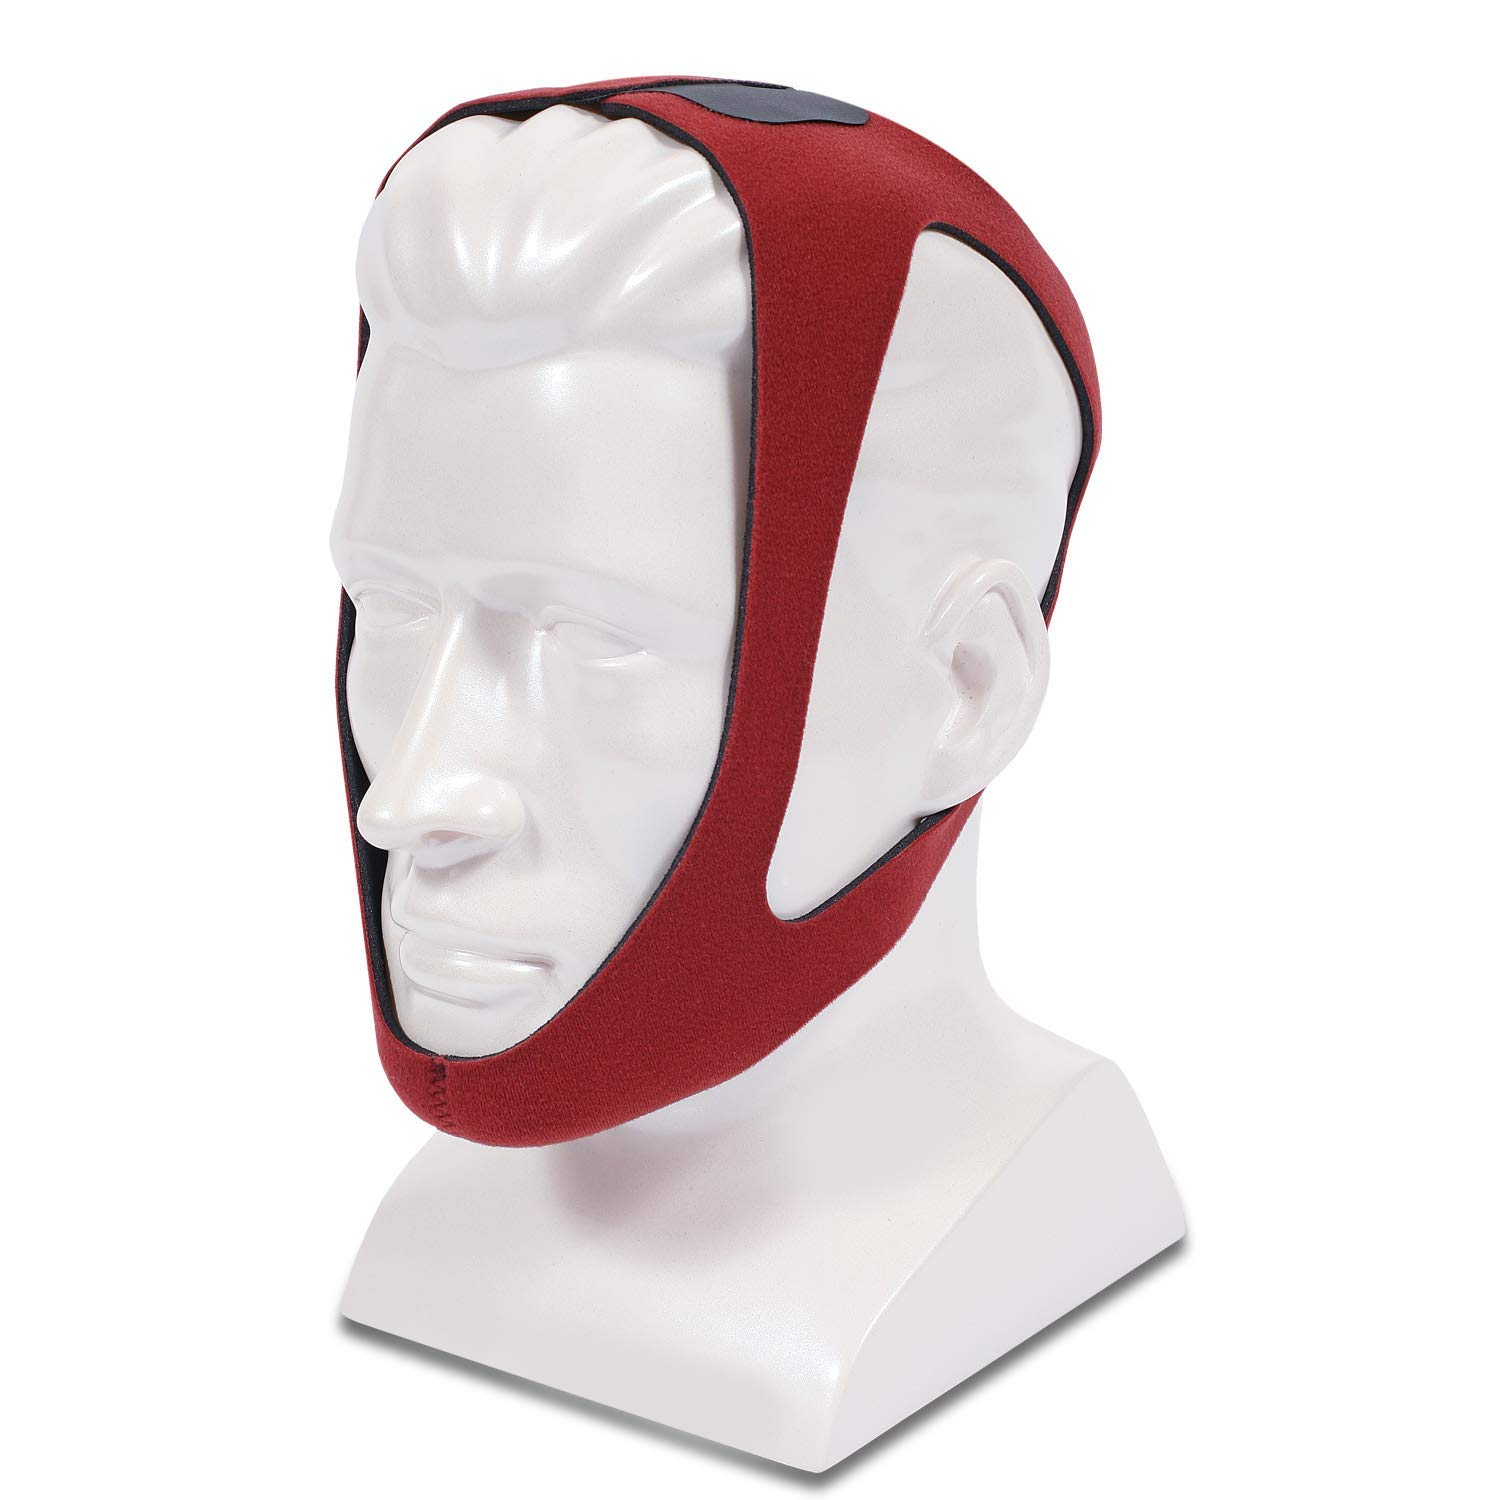 Sunset Ruby Style Chin Strap, Medium Part No. Cs007m (1/ea) by Sunset Healthcare Solutions